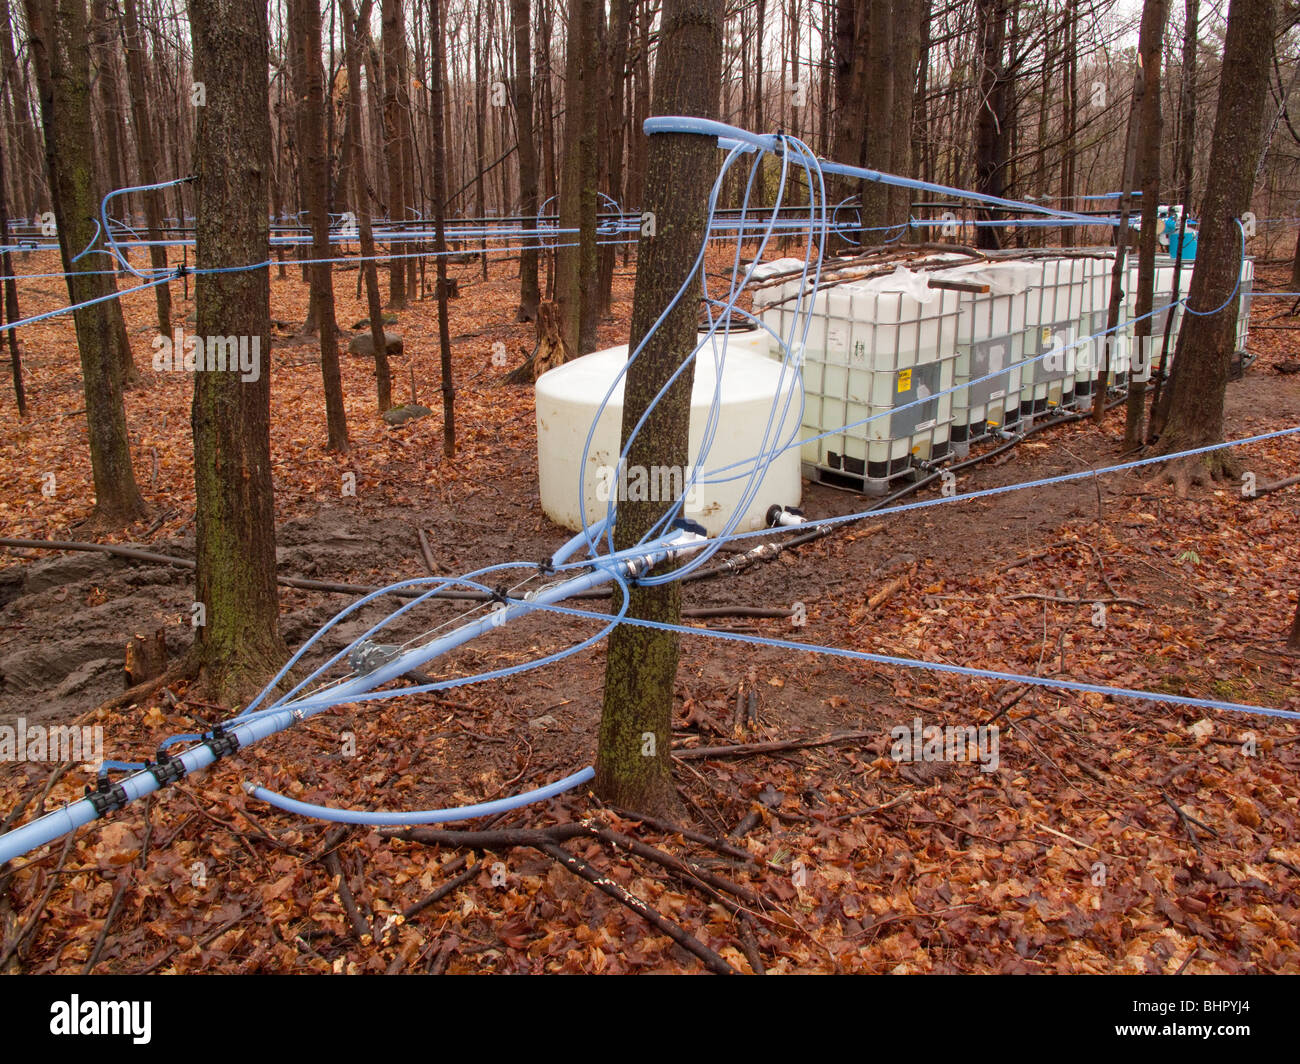 collecting-maple-syrup-BHPYJ4.jpg